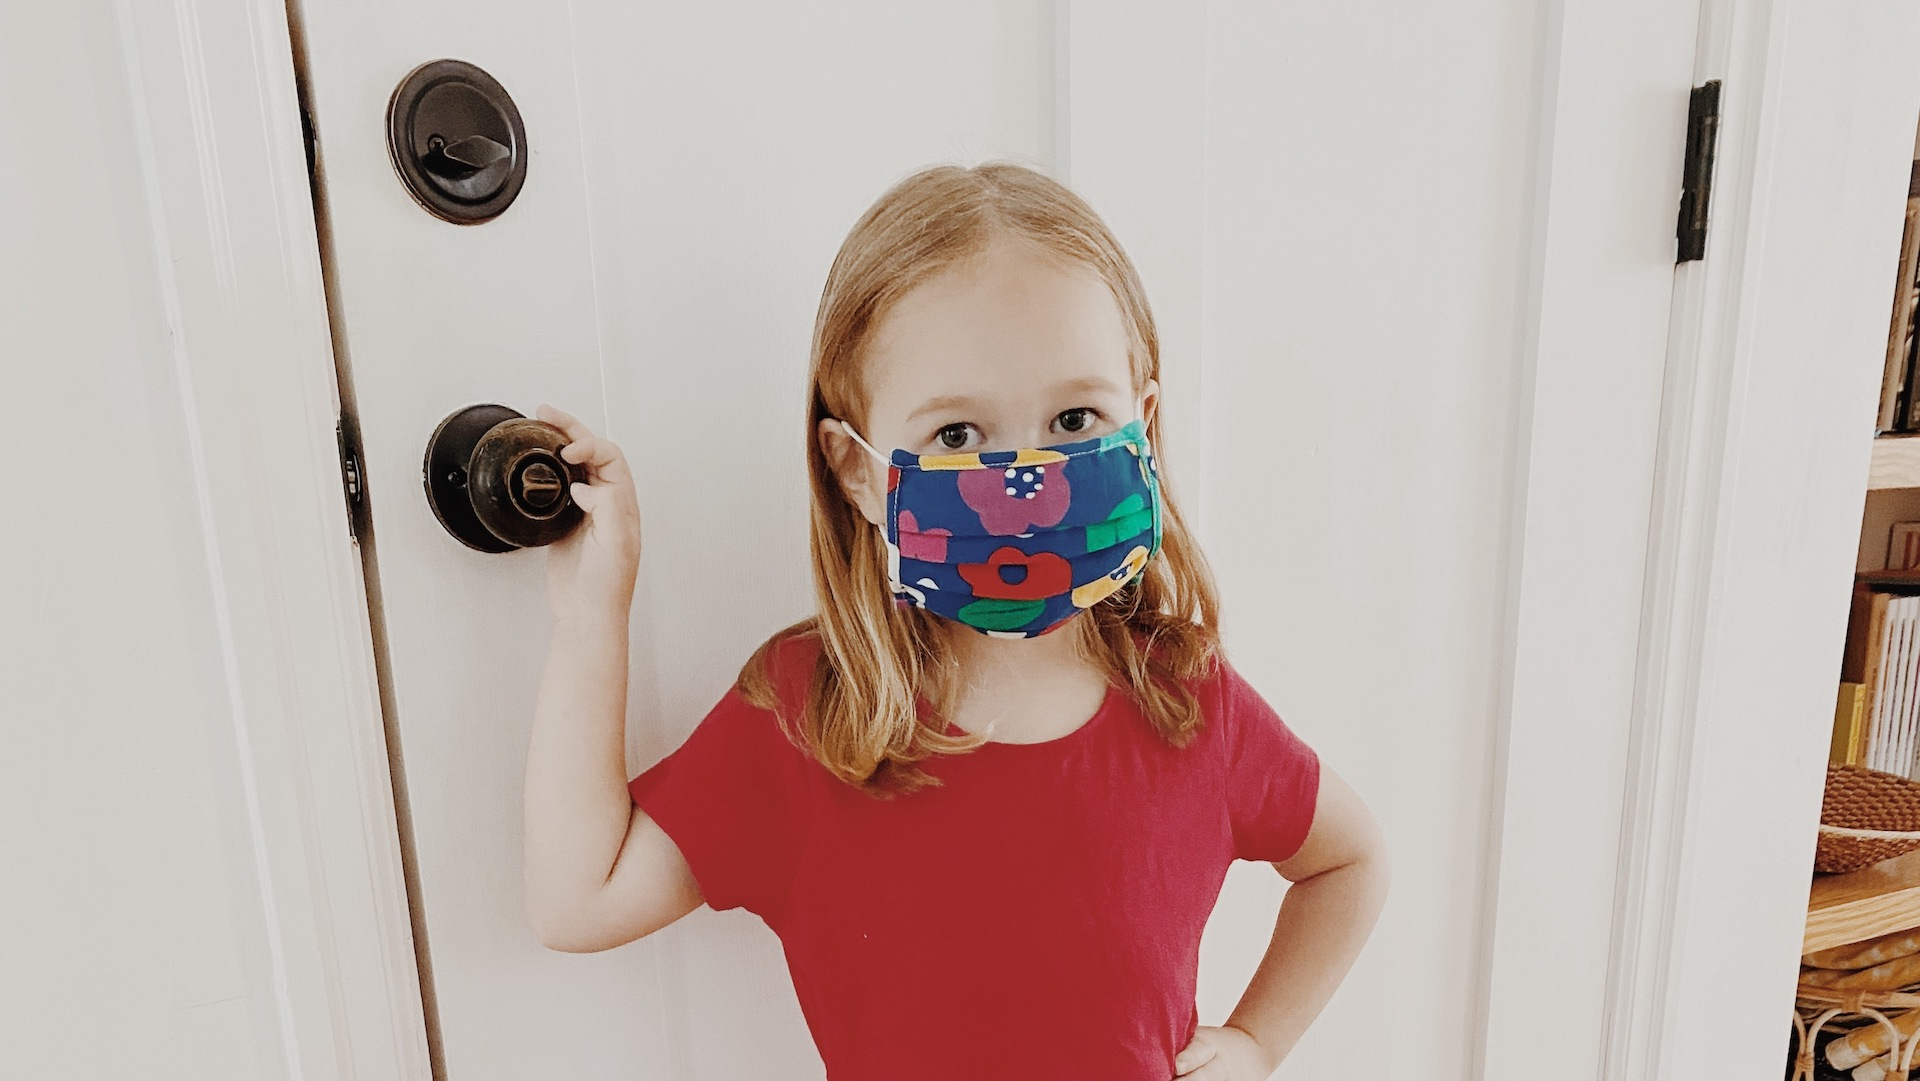 Hanna Andersson Kids Face Masks Are Here & Safety Just Got So Adorable